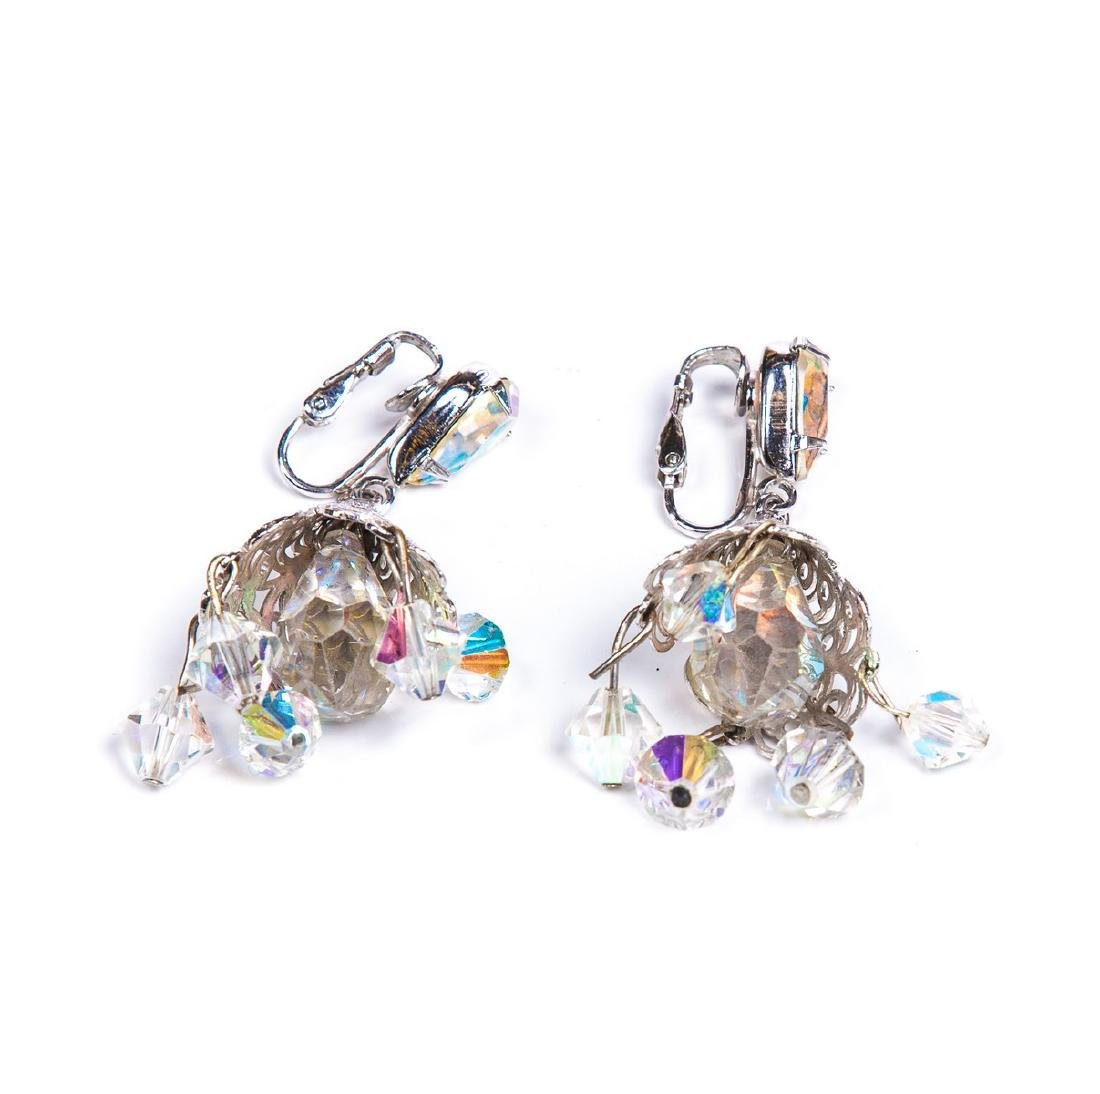 TWO PAIRS OF AURORA BOREALIS CRYSTAL EARRINGS - 8